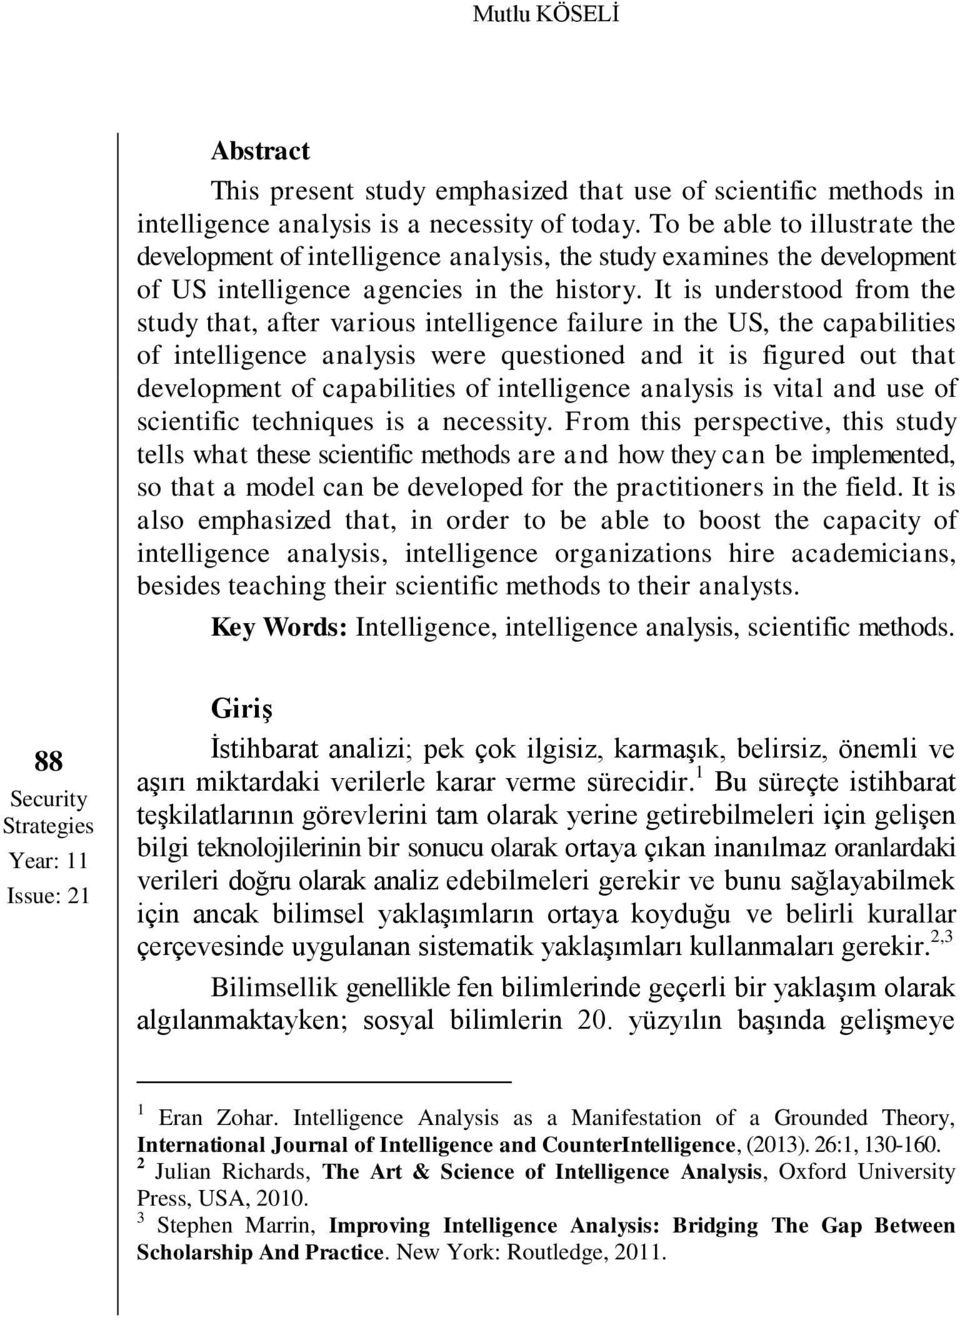 It is understood from the study that, after various intelligence failure in the US, the capabilities of intelligence analysis were questioned and it is figured out that development of capabilities of